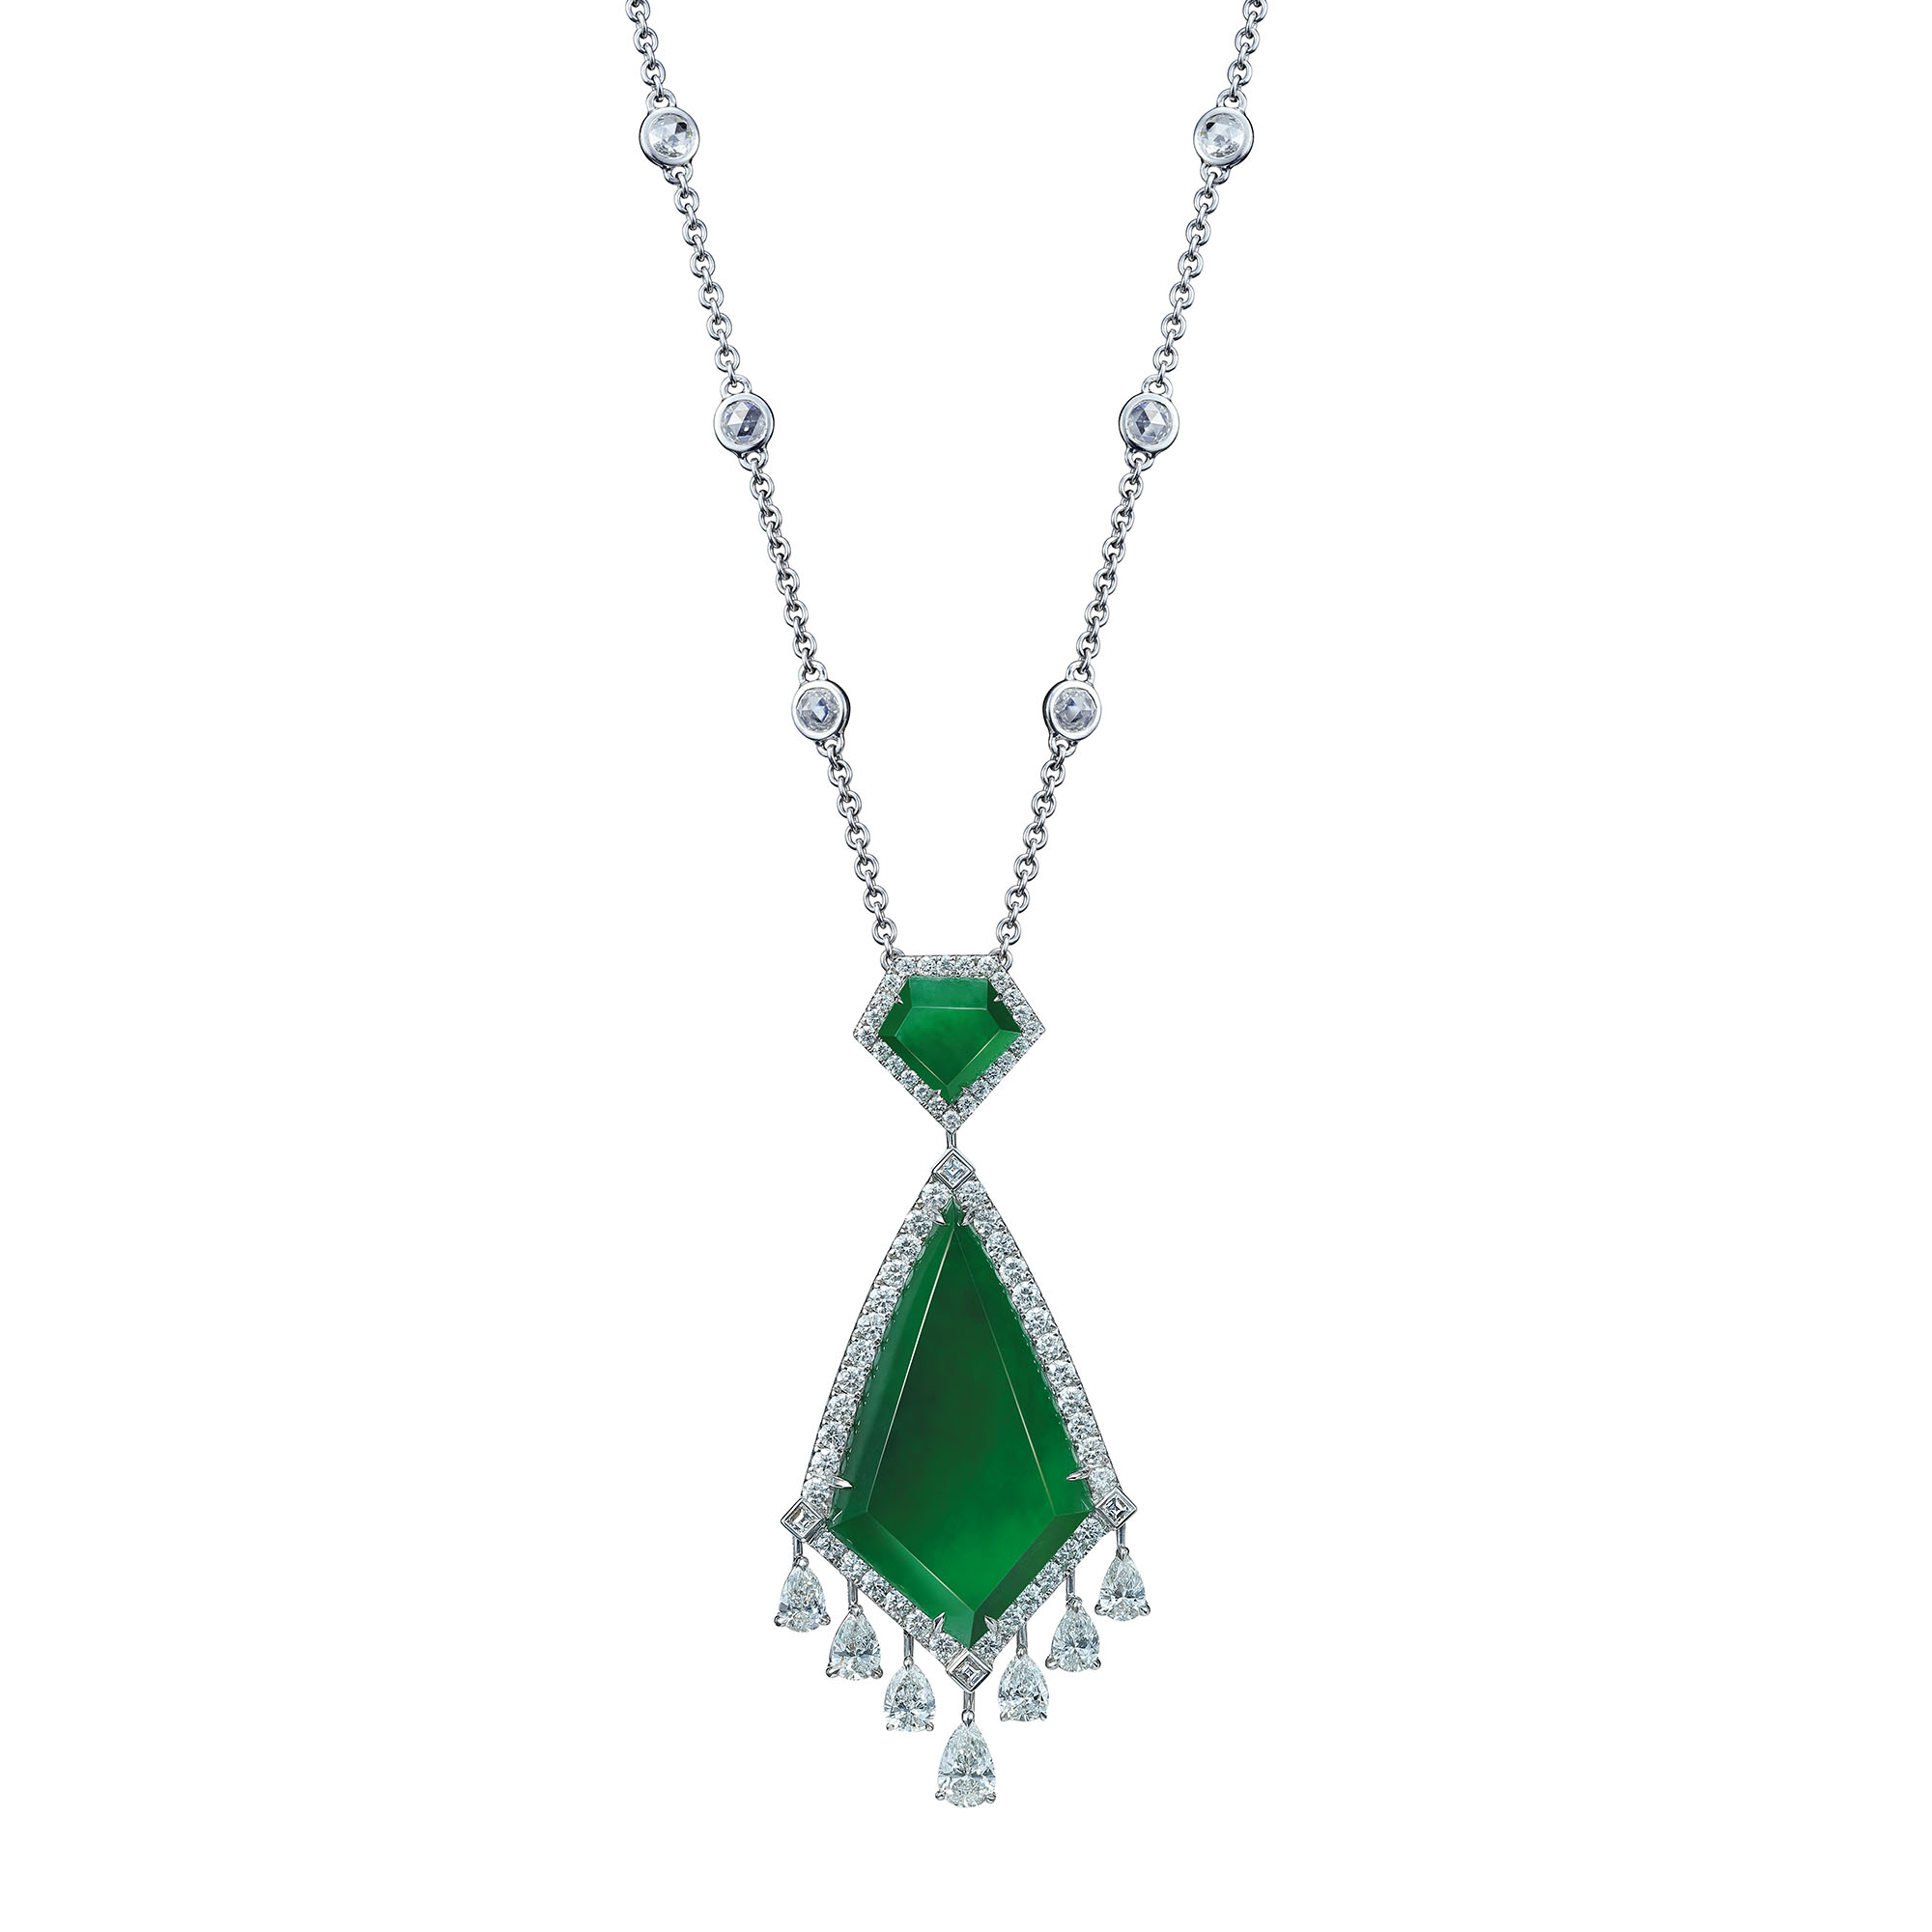 Opulent Jadeite Fan Necklace